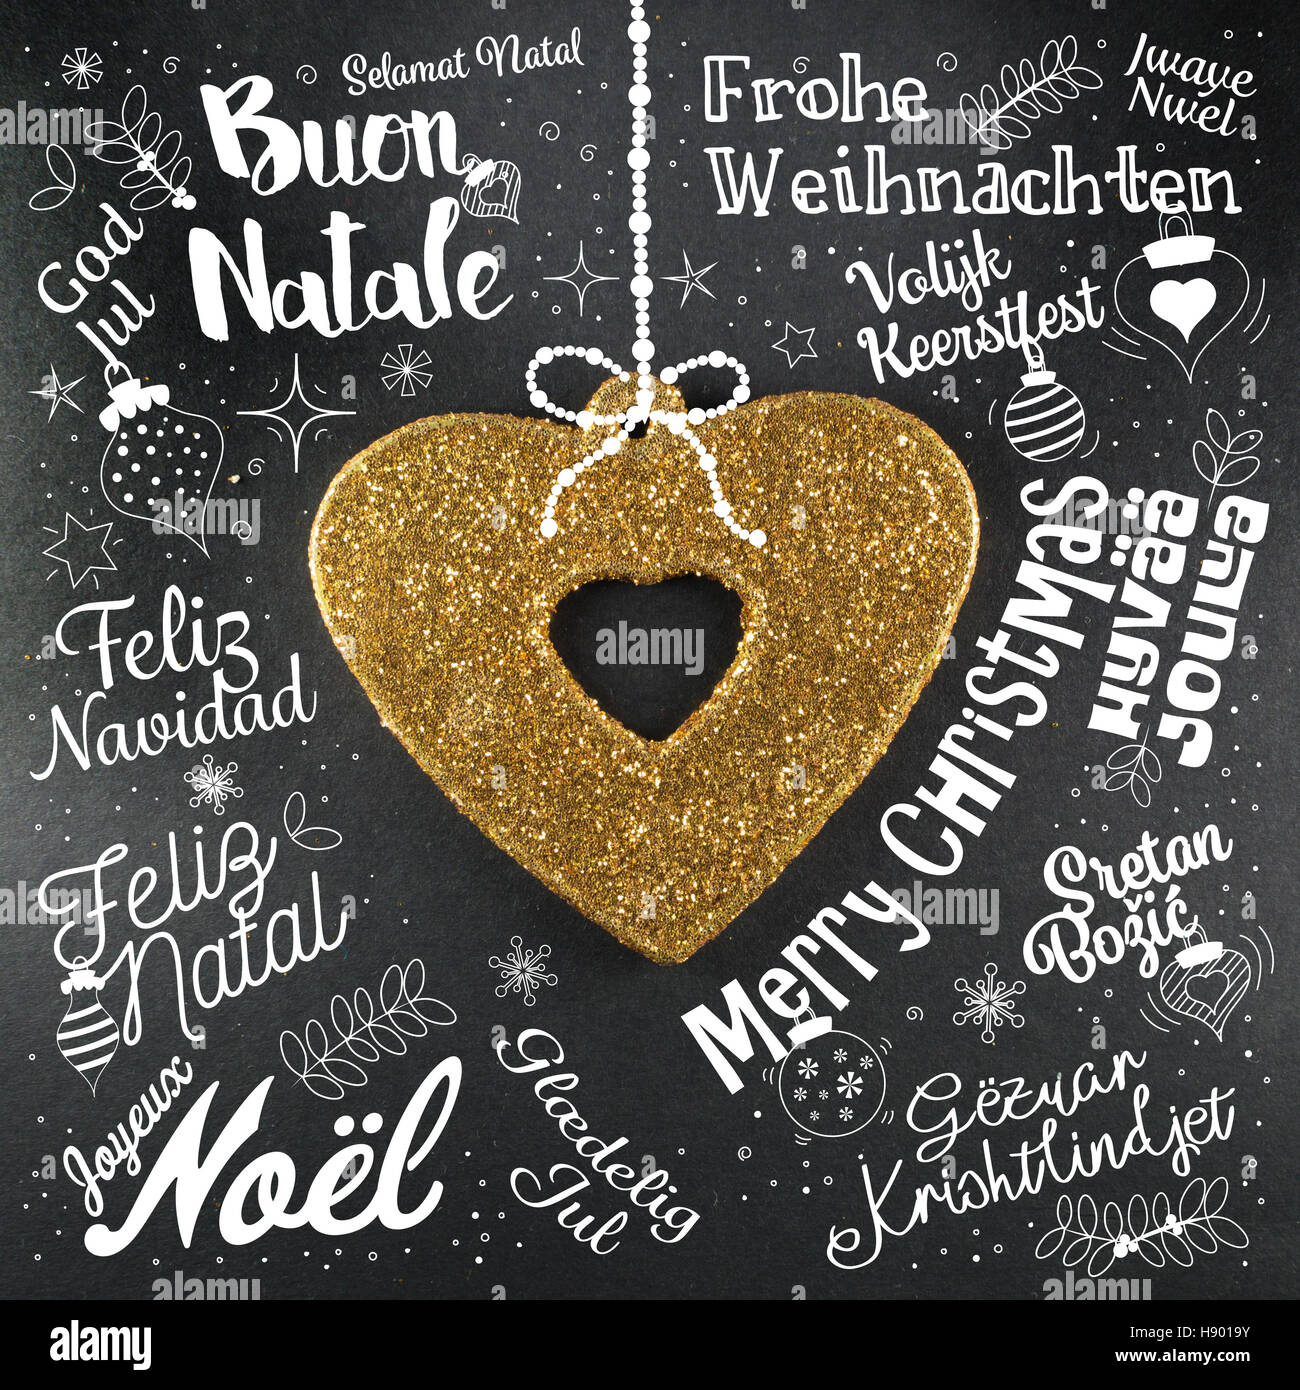 merry christmas greetings card from world in different languages with golden heart calligraphic text and - Merry Christmas In Danish